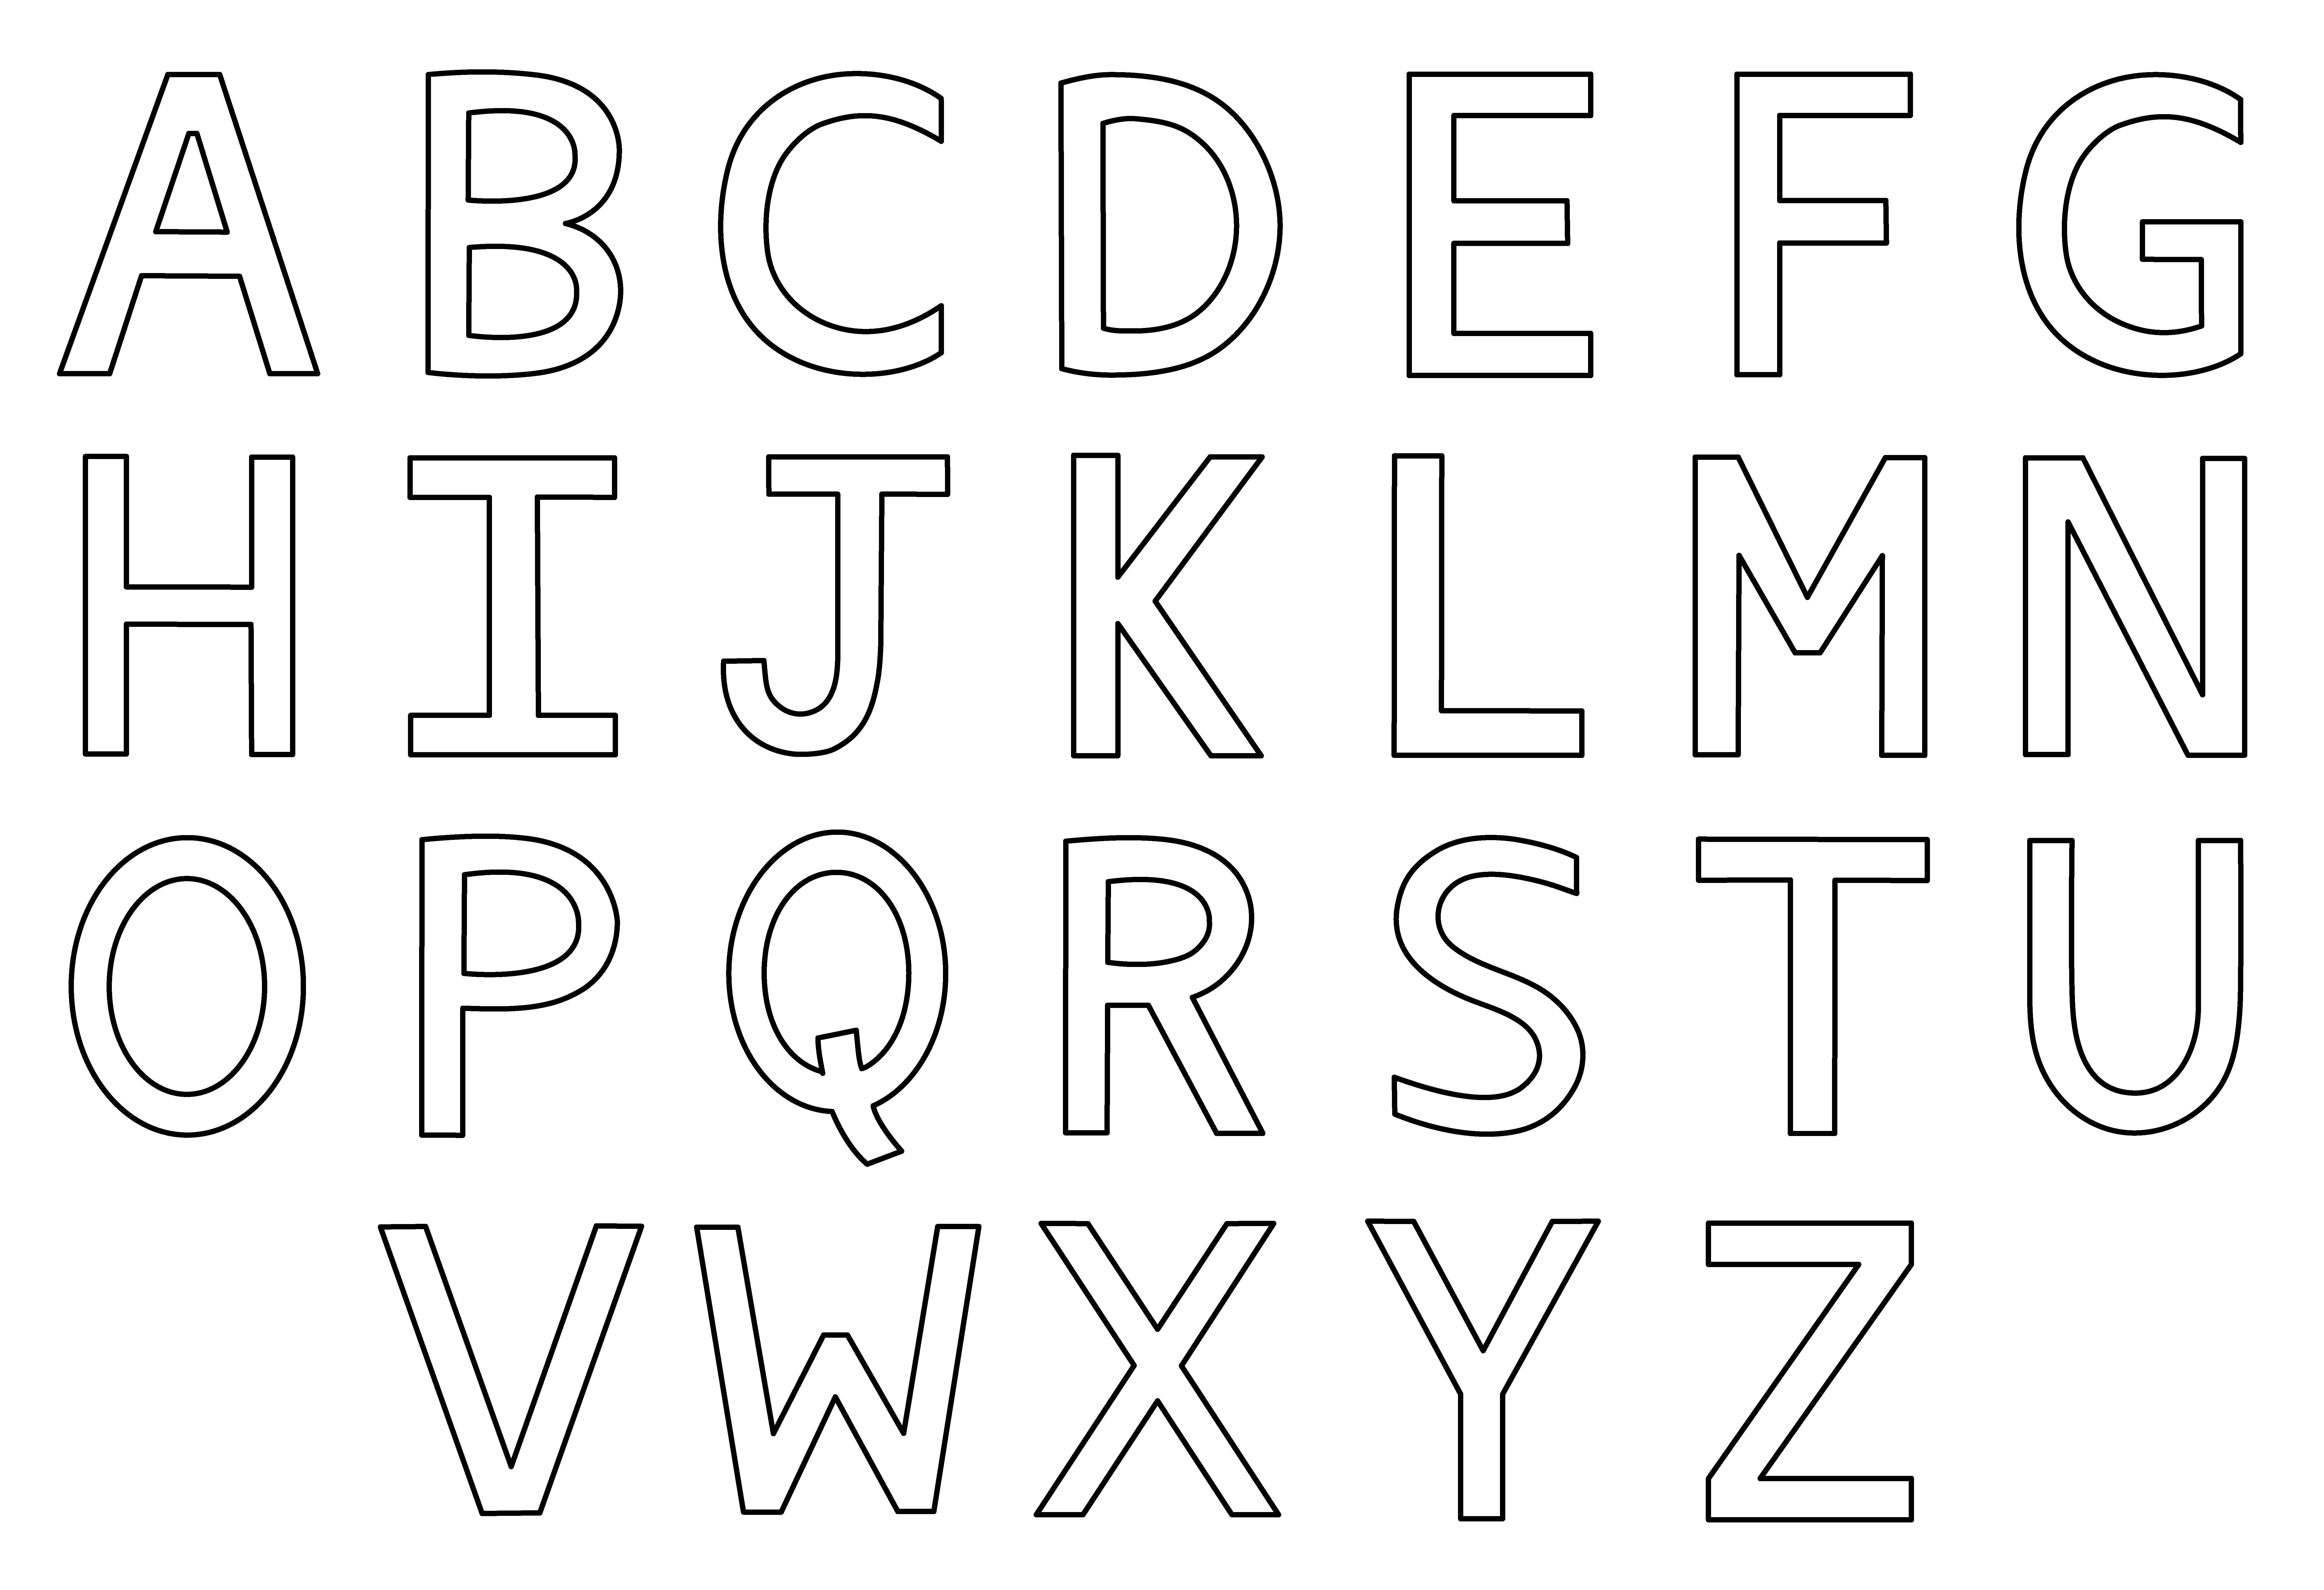 Whole Alphabet Coloring Pages Free Printable